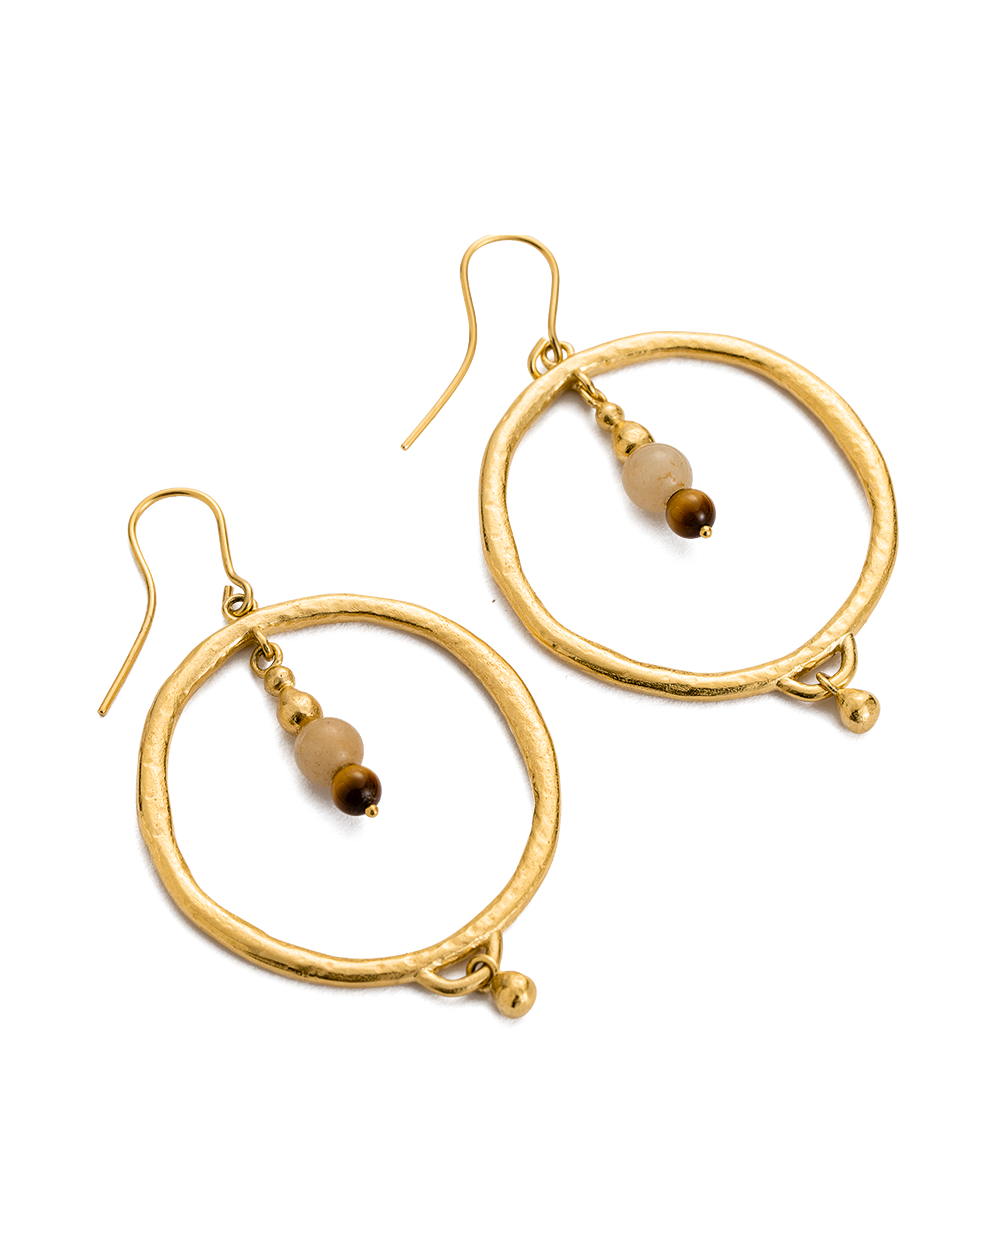 ARTISAN HOOP EARRINGS (18K-GOLD-PLATED)